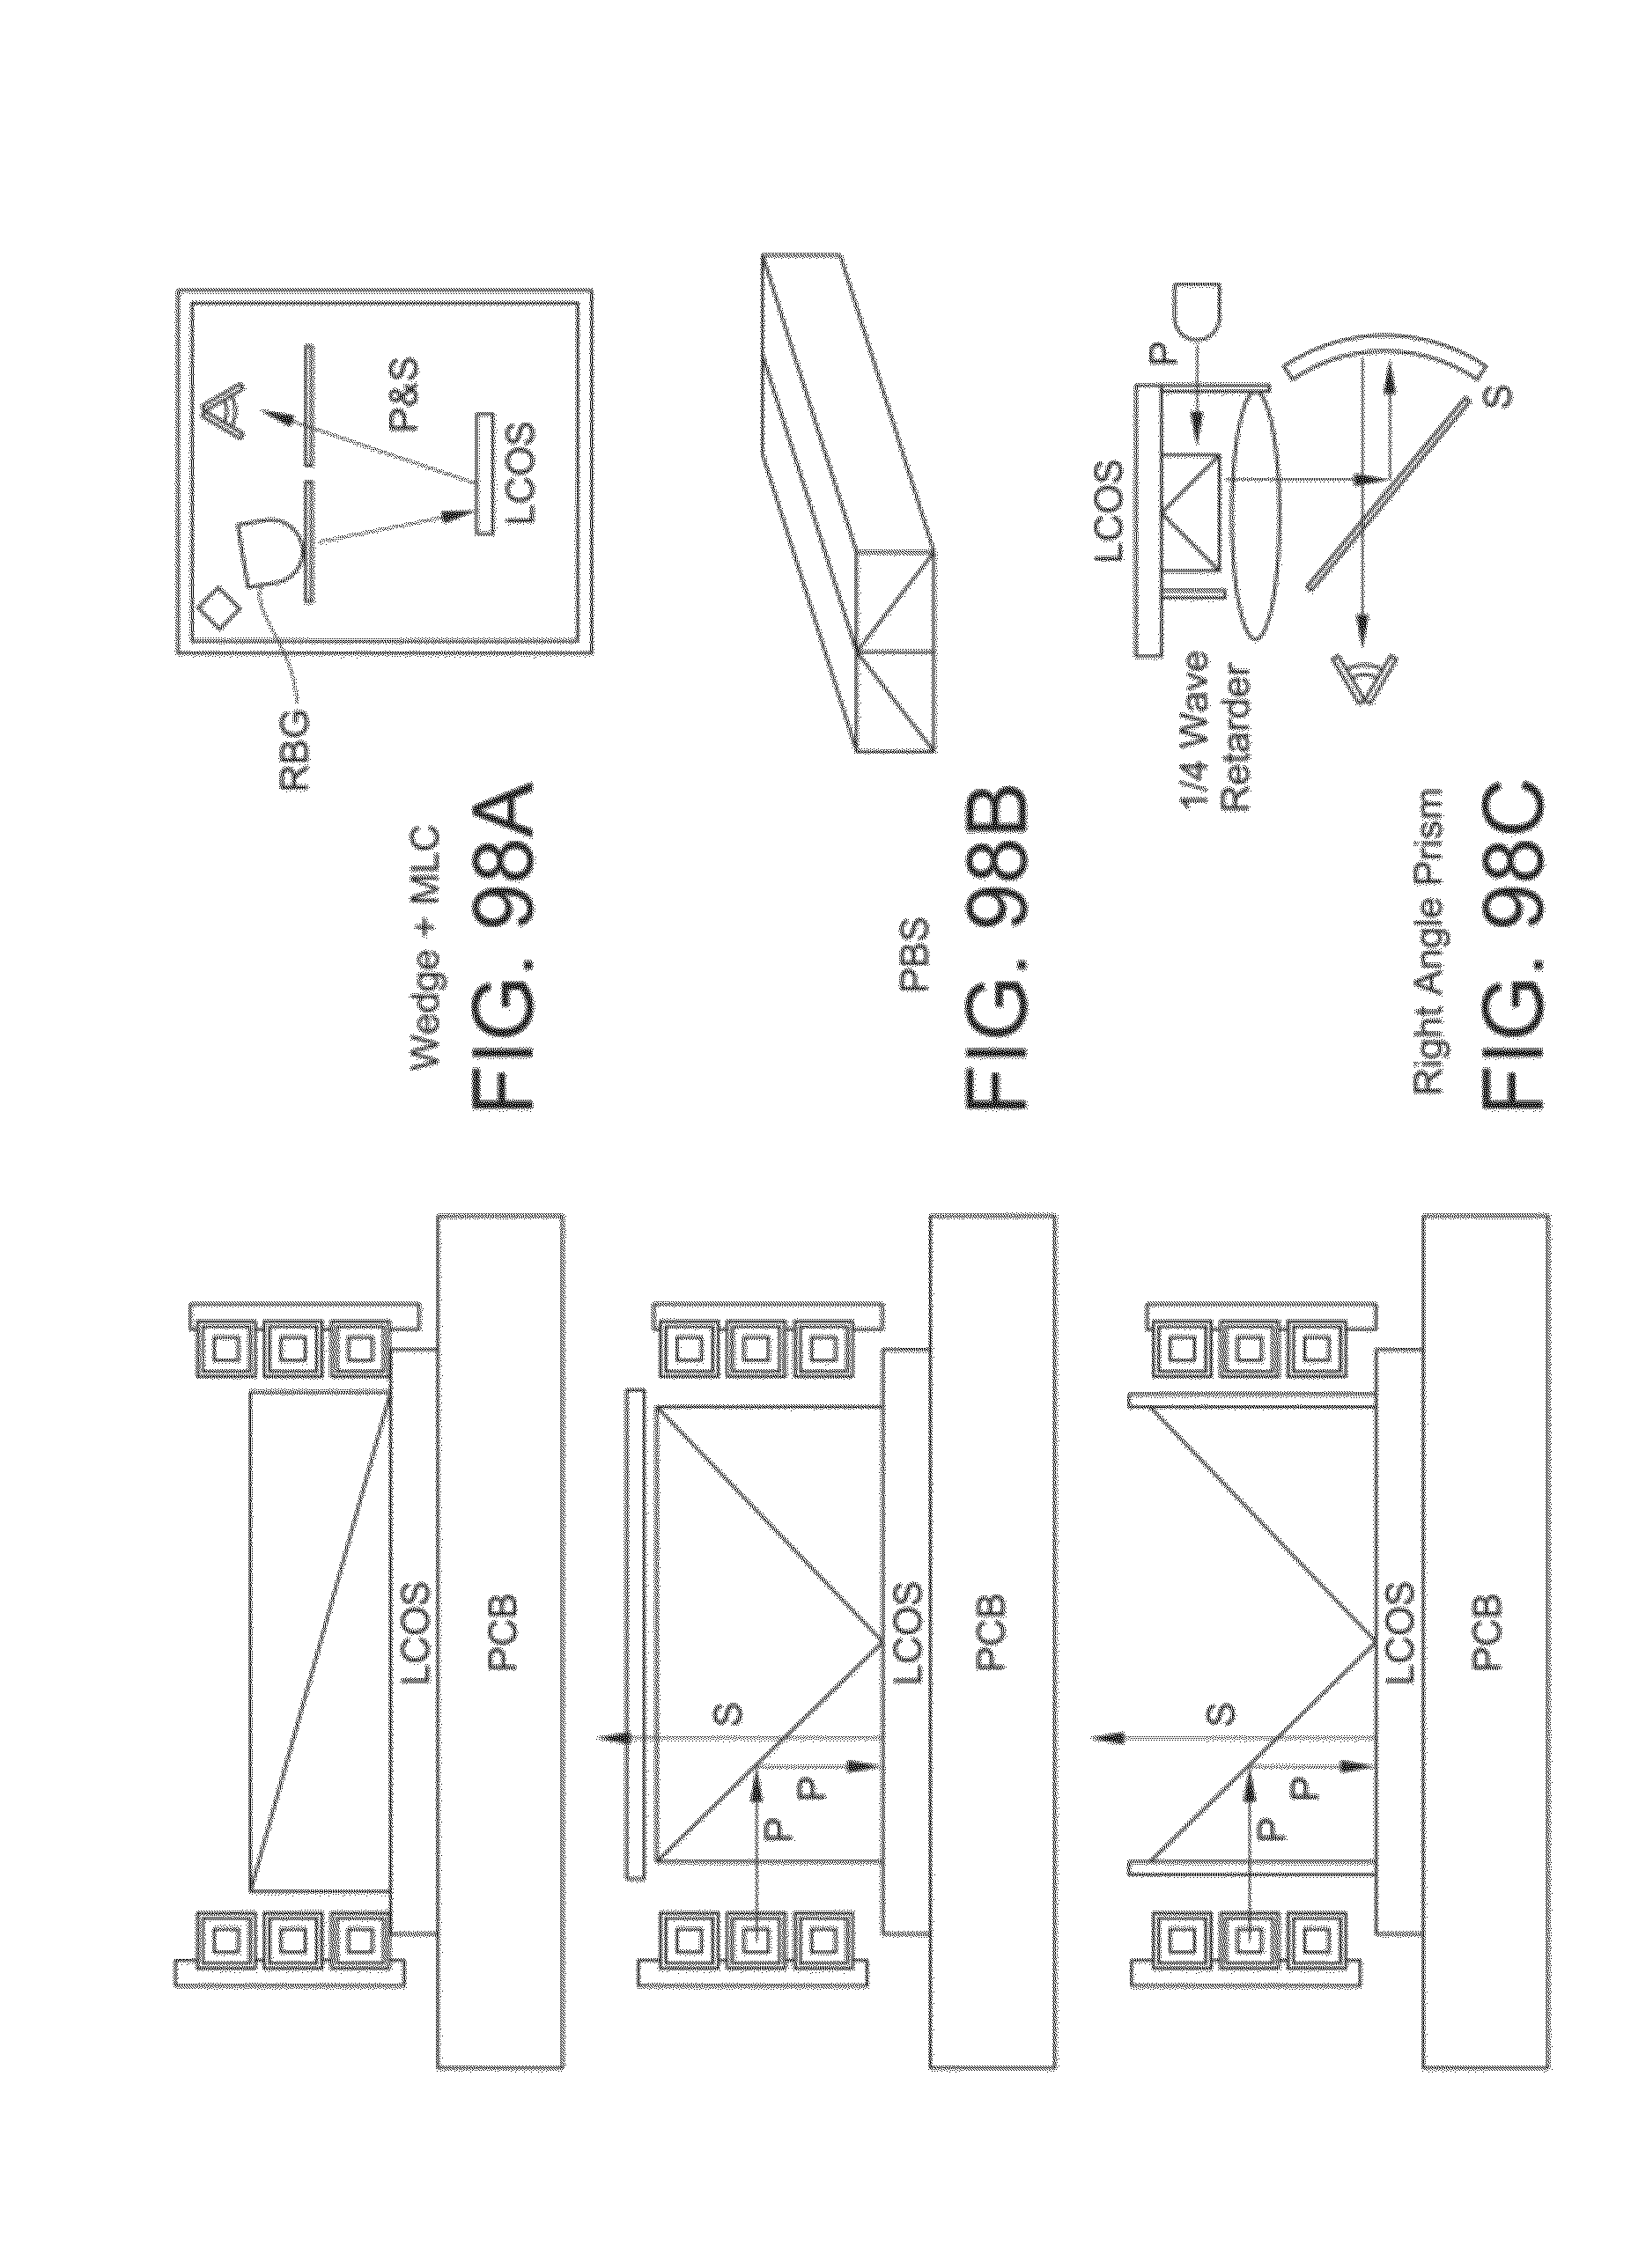 Patent Us 9341843 B2 Wiring Diagram For Fog Lights Simple Yamaha Morgan 4 Images